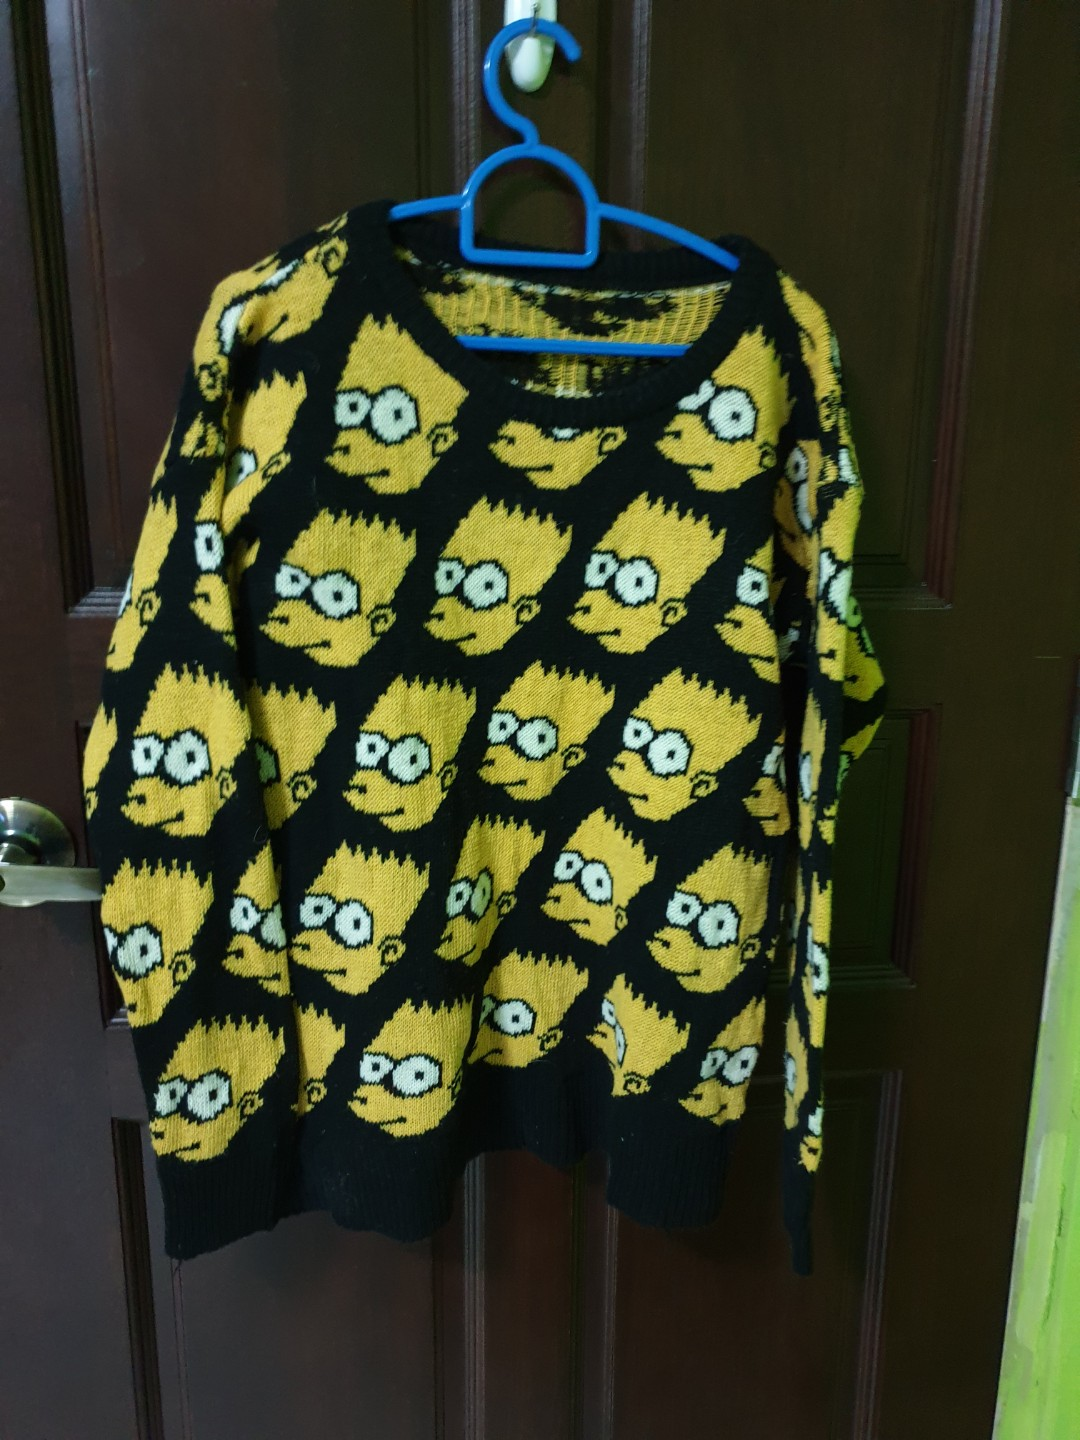 Bart Simpson Sweater Women S Fashion Clothes Tops On Carousell